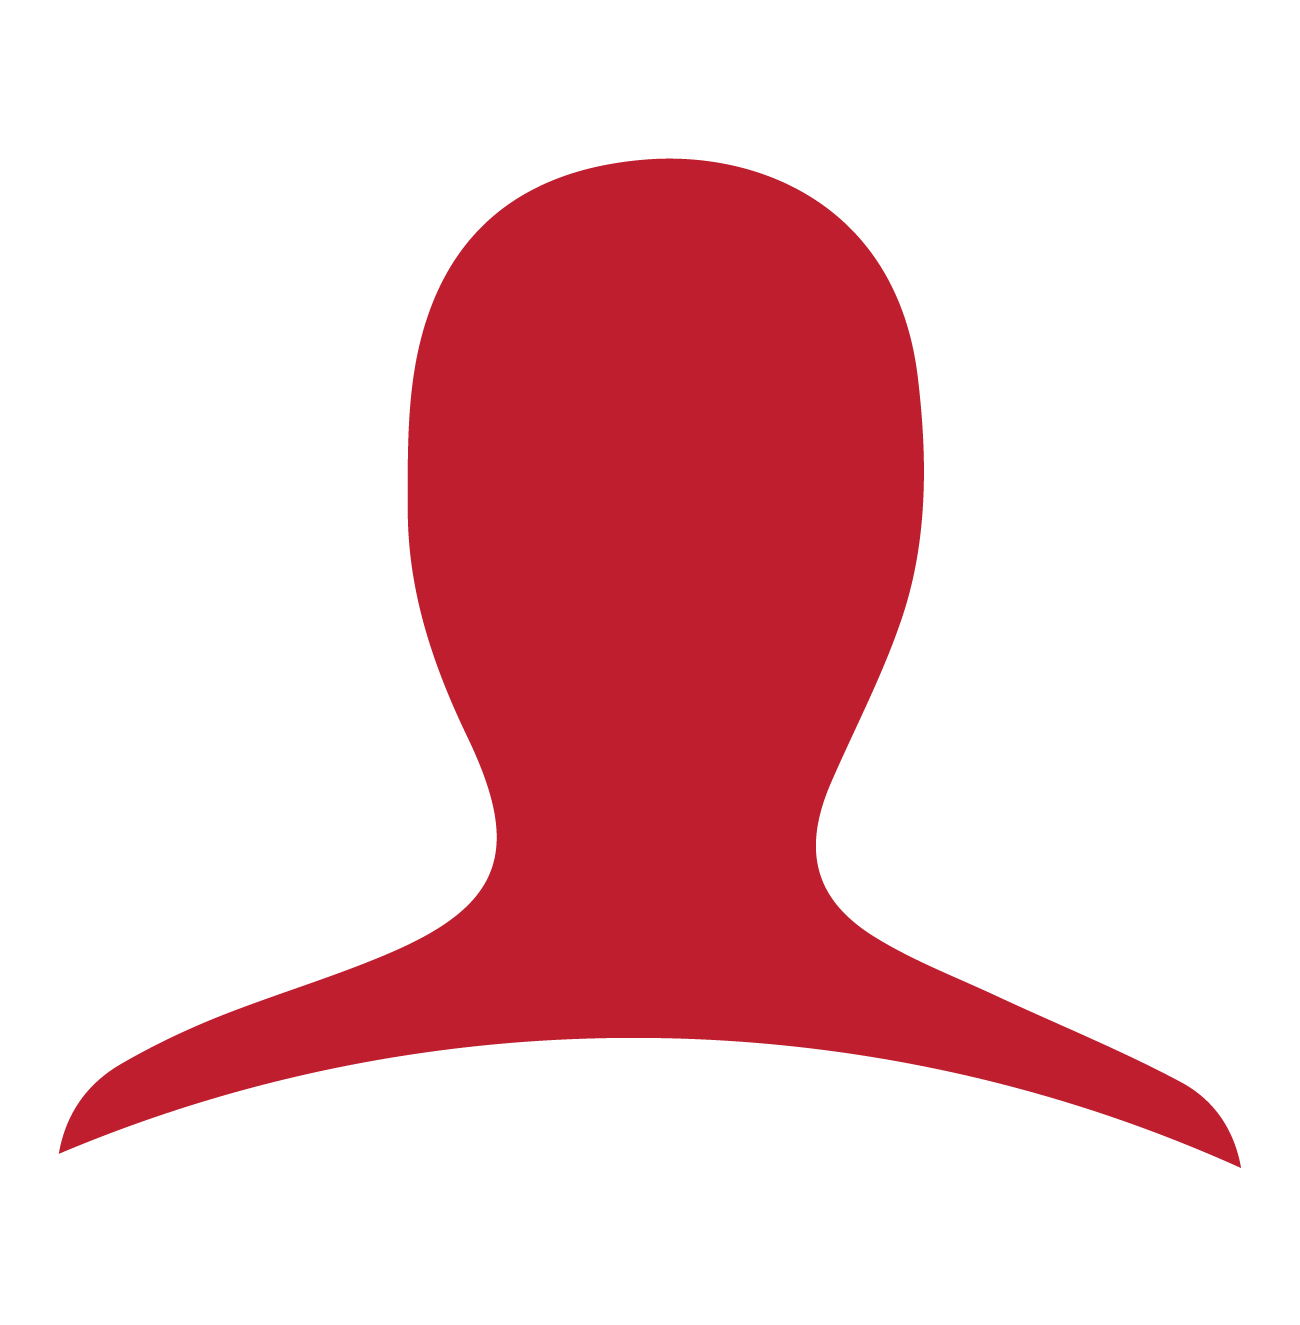 pac-logo-red-silhouette.png